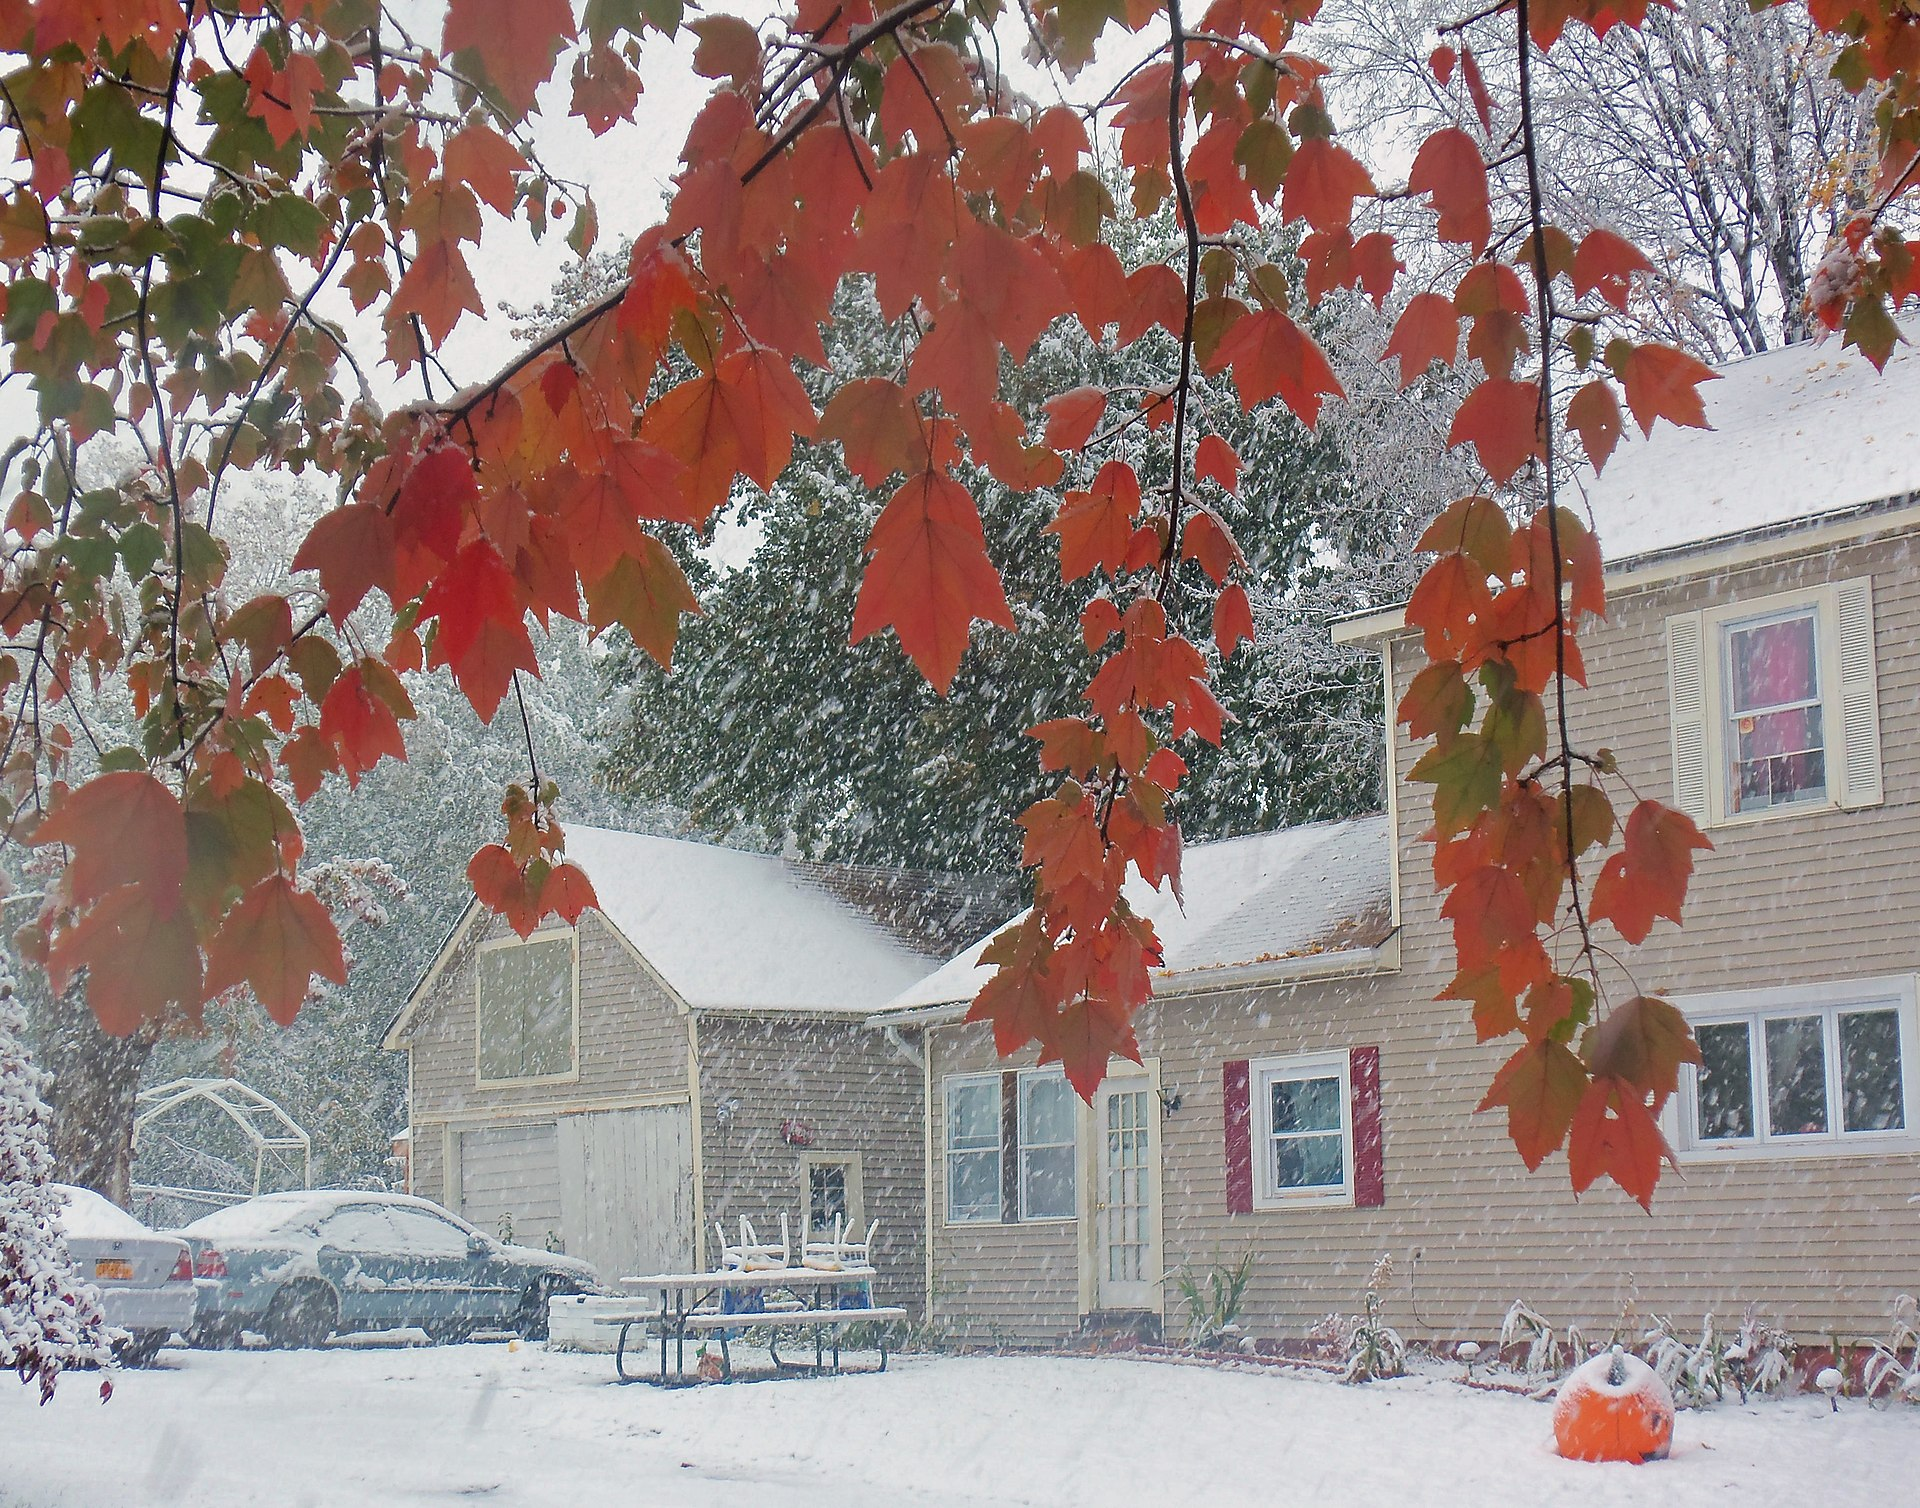 Snow Falling Gif Wallpaper 2011 Halloween Nor Easter Wikipedia